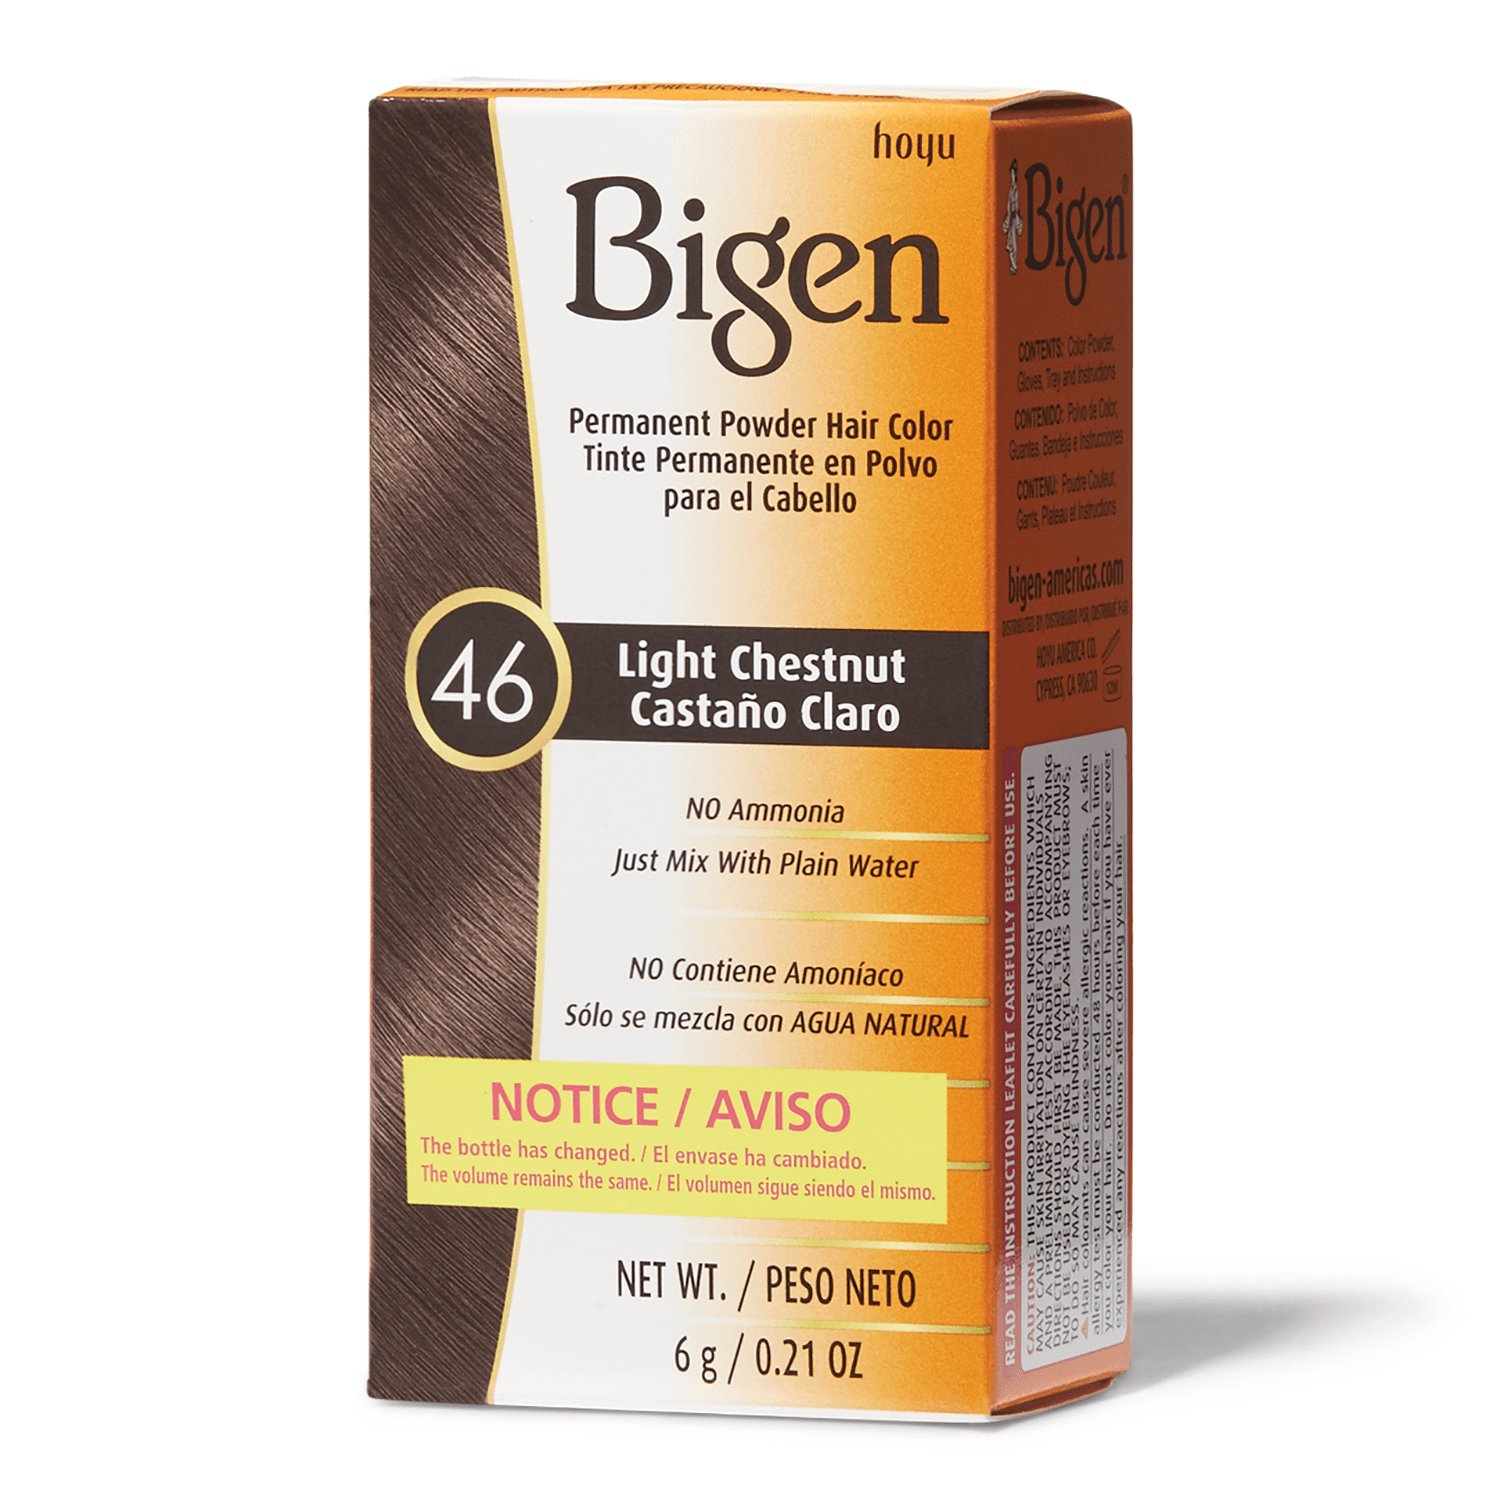 New Bigen Permanent Powder Hair Color Ideas With Pictures